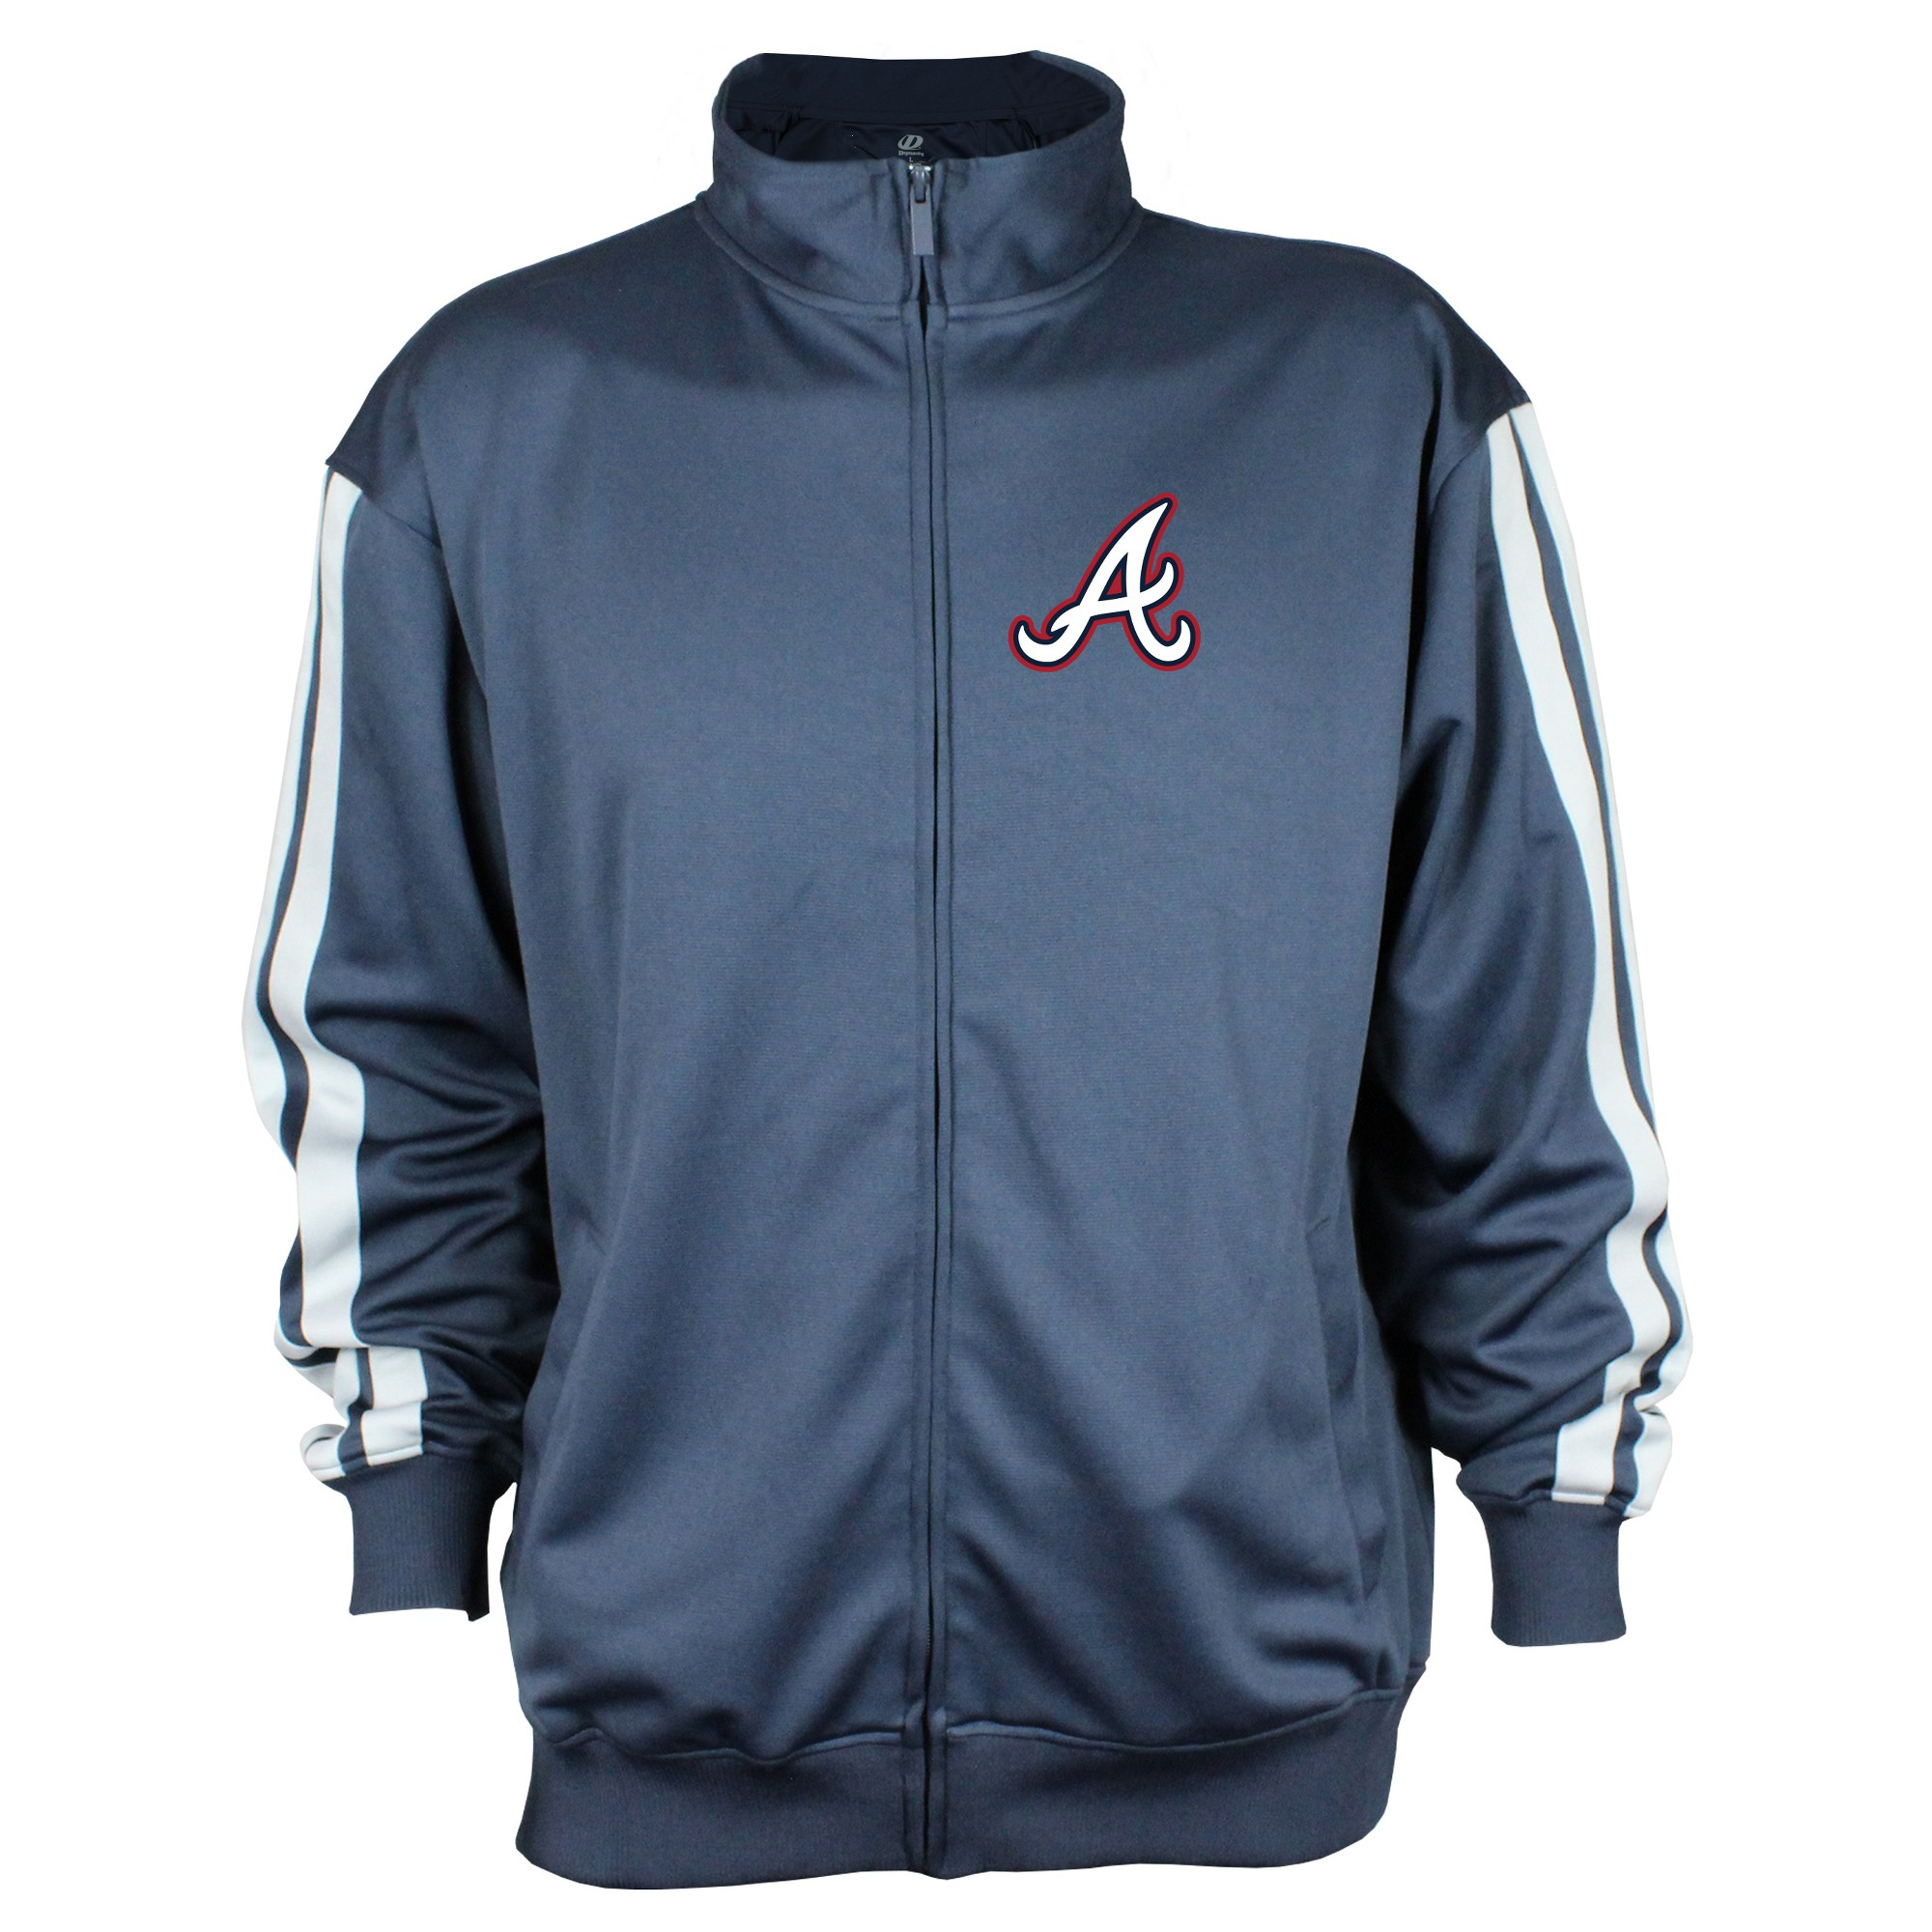 Atlanta Braves Men S Zip Up Track Jacket M Track Jackets Jackets Performance Hoodie